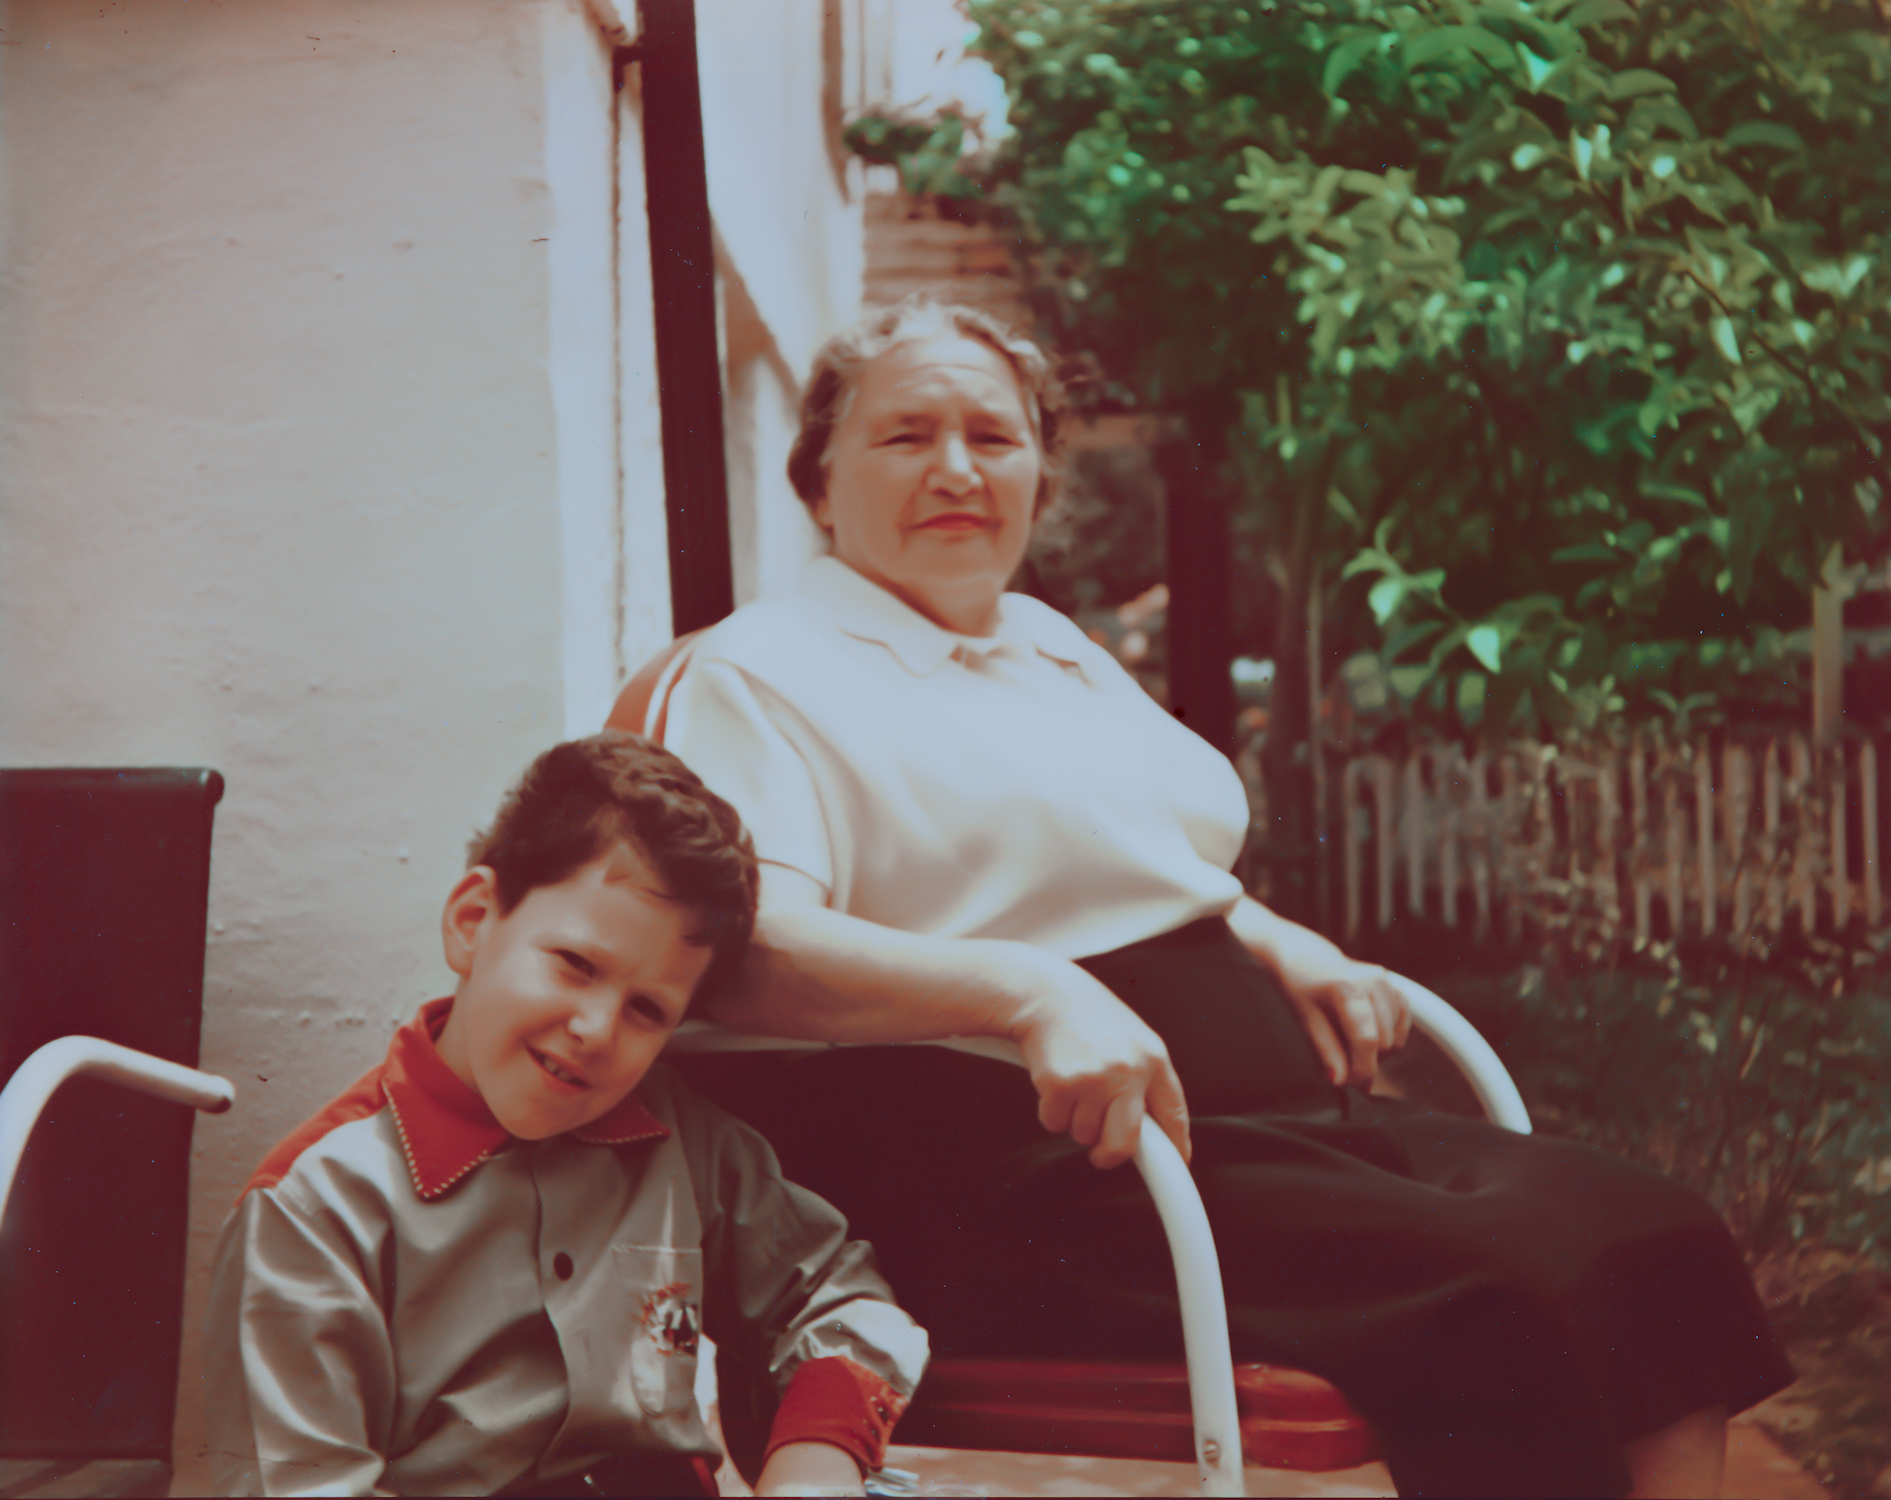 My Brother With My Grandmother In Her Garden Apx 1953